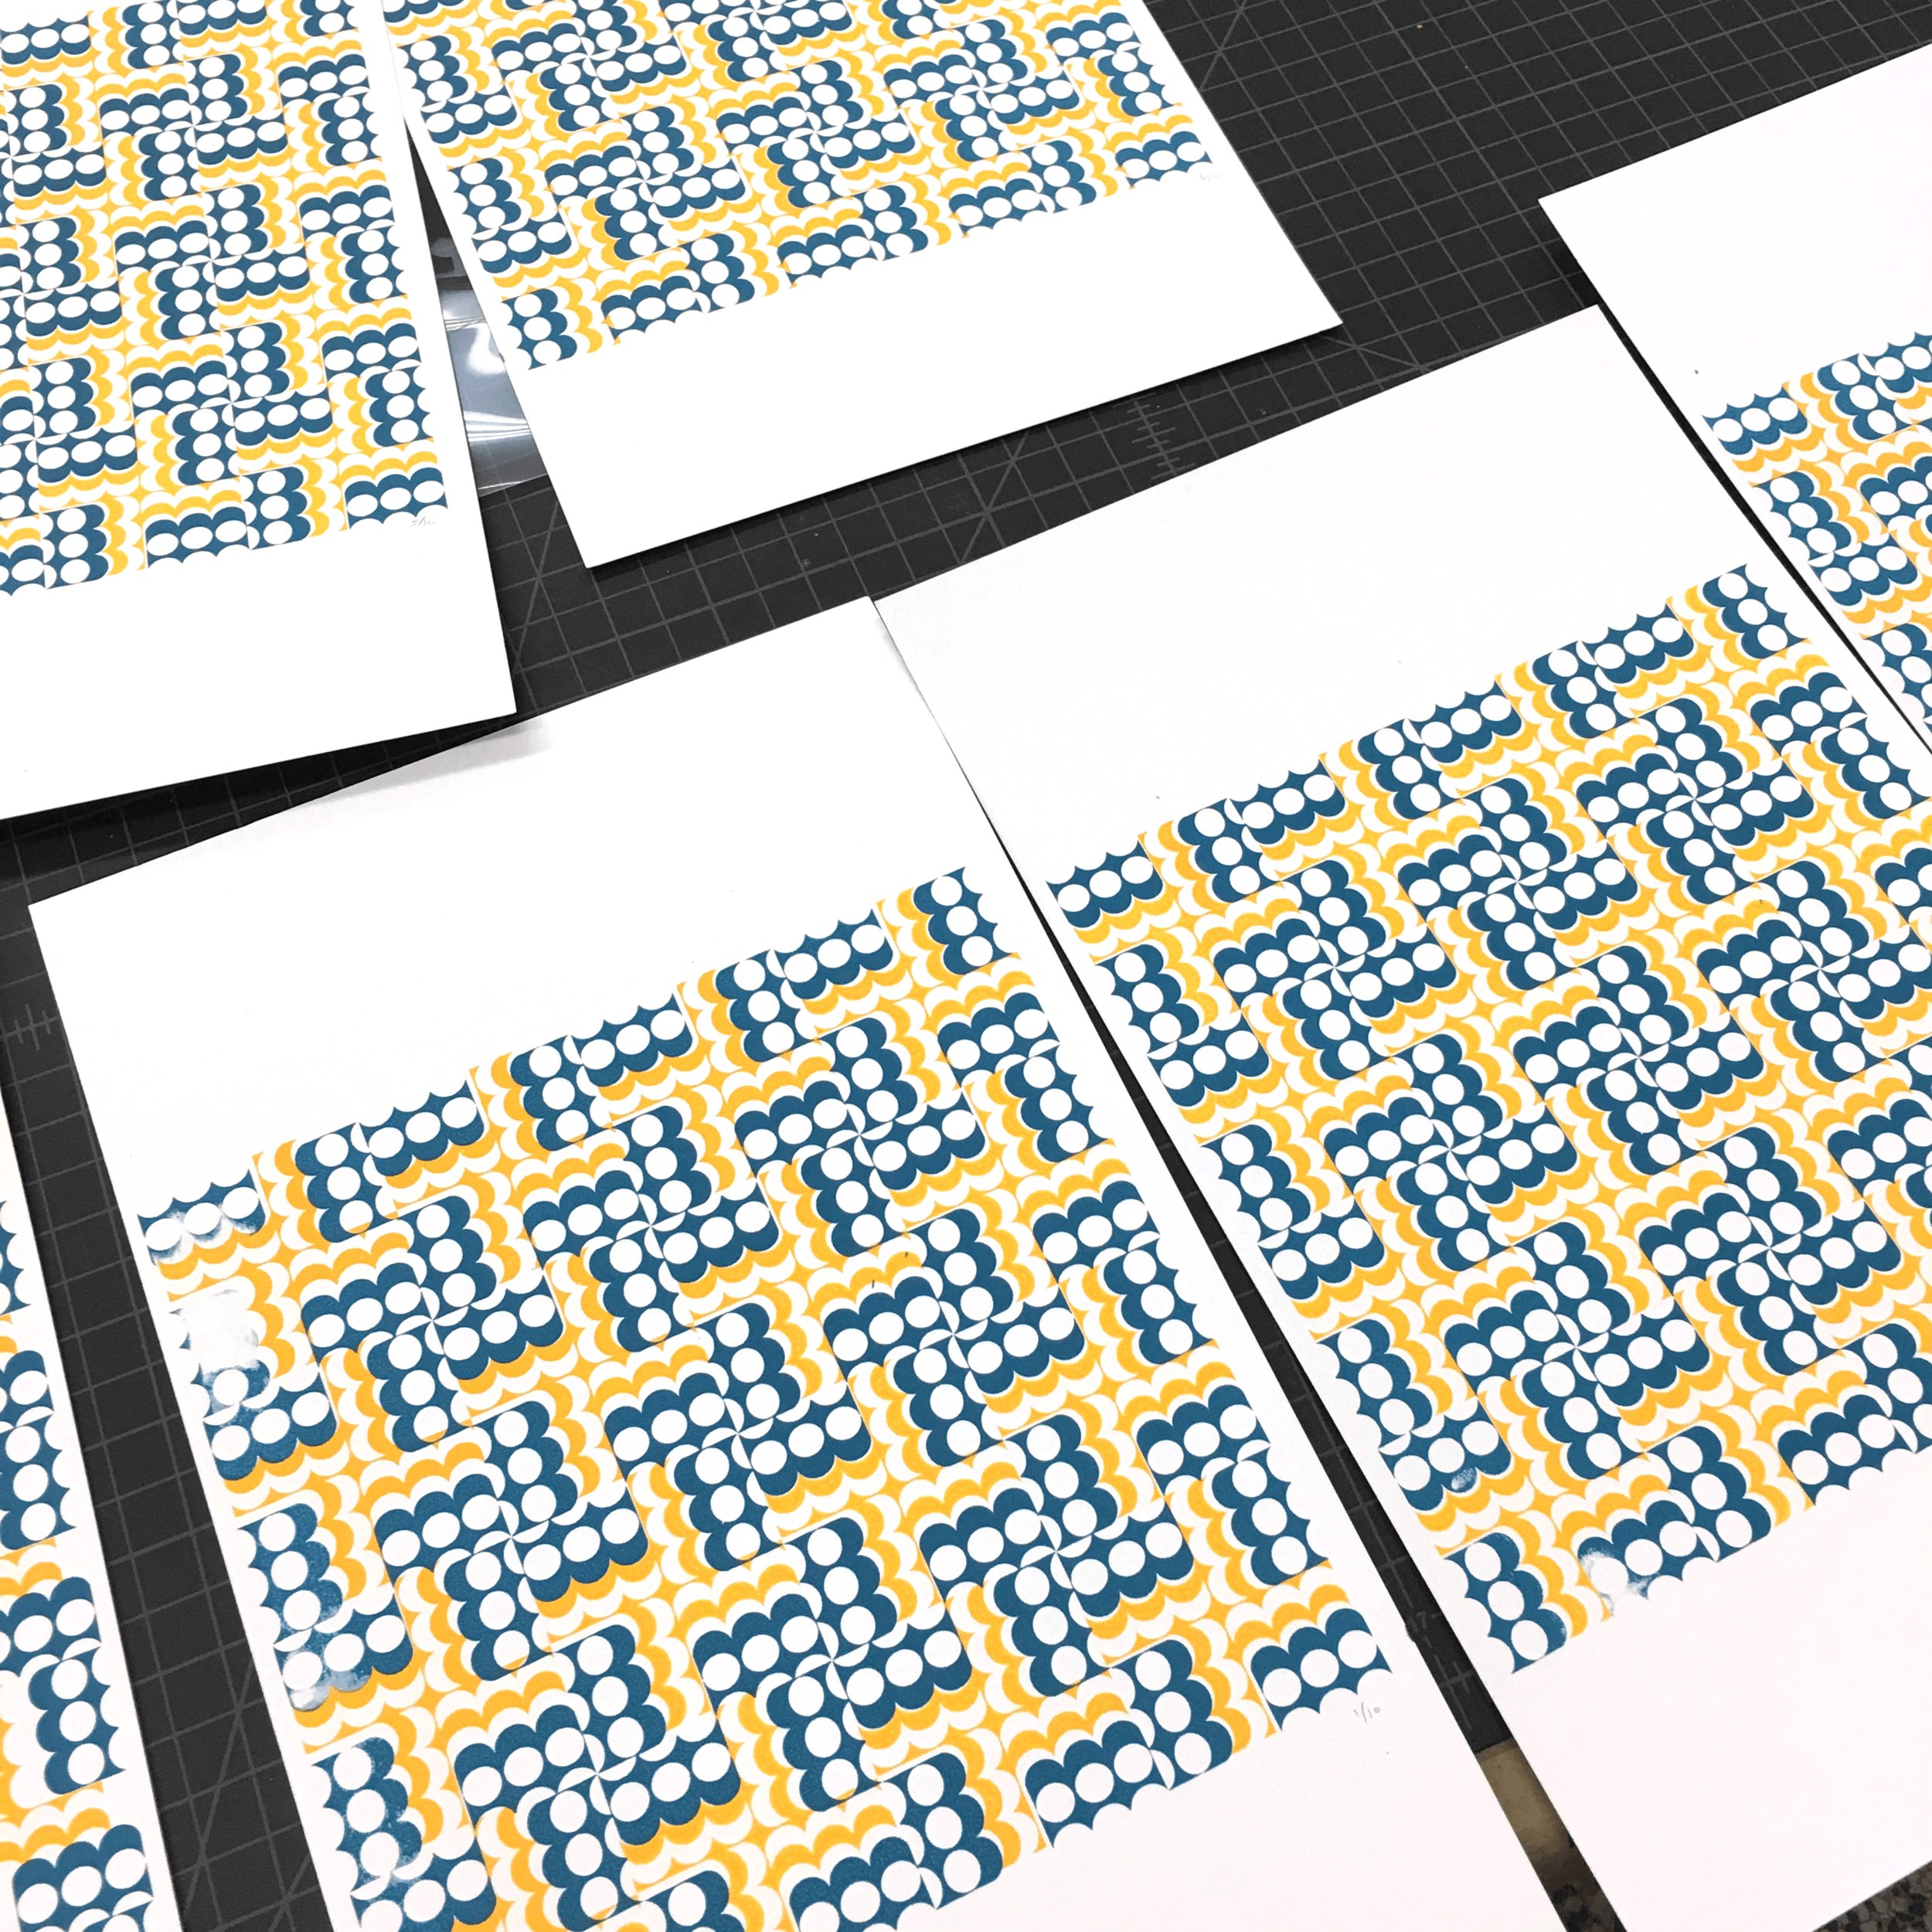 Learning to ScreenPrint, Trial Patterns Runs, Paper